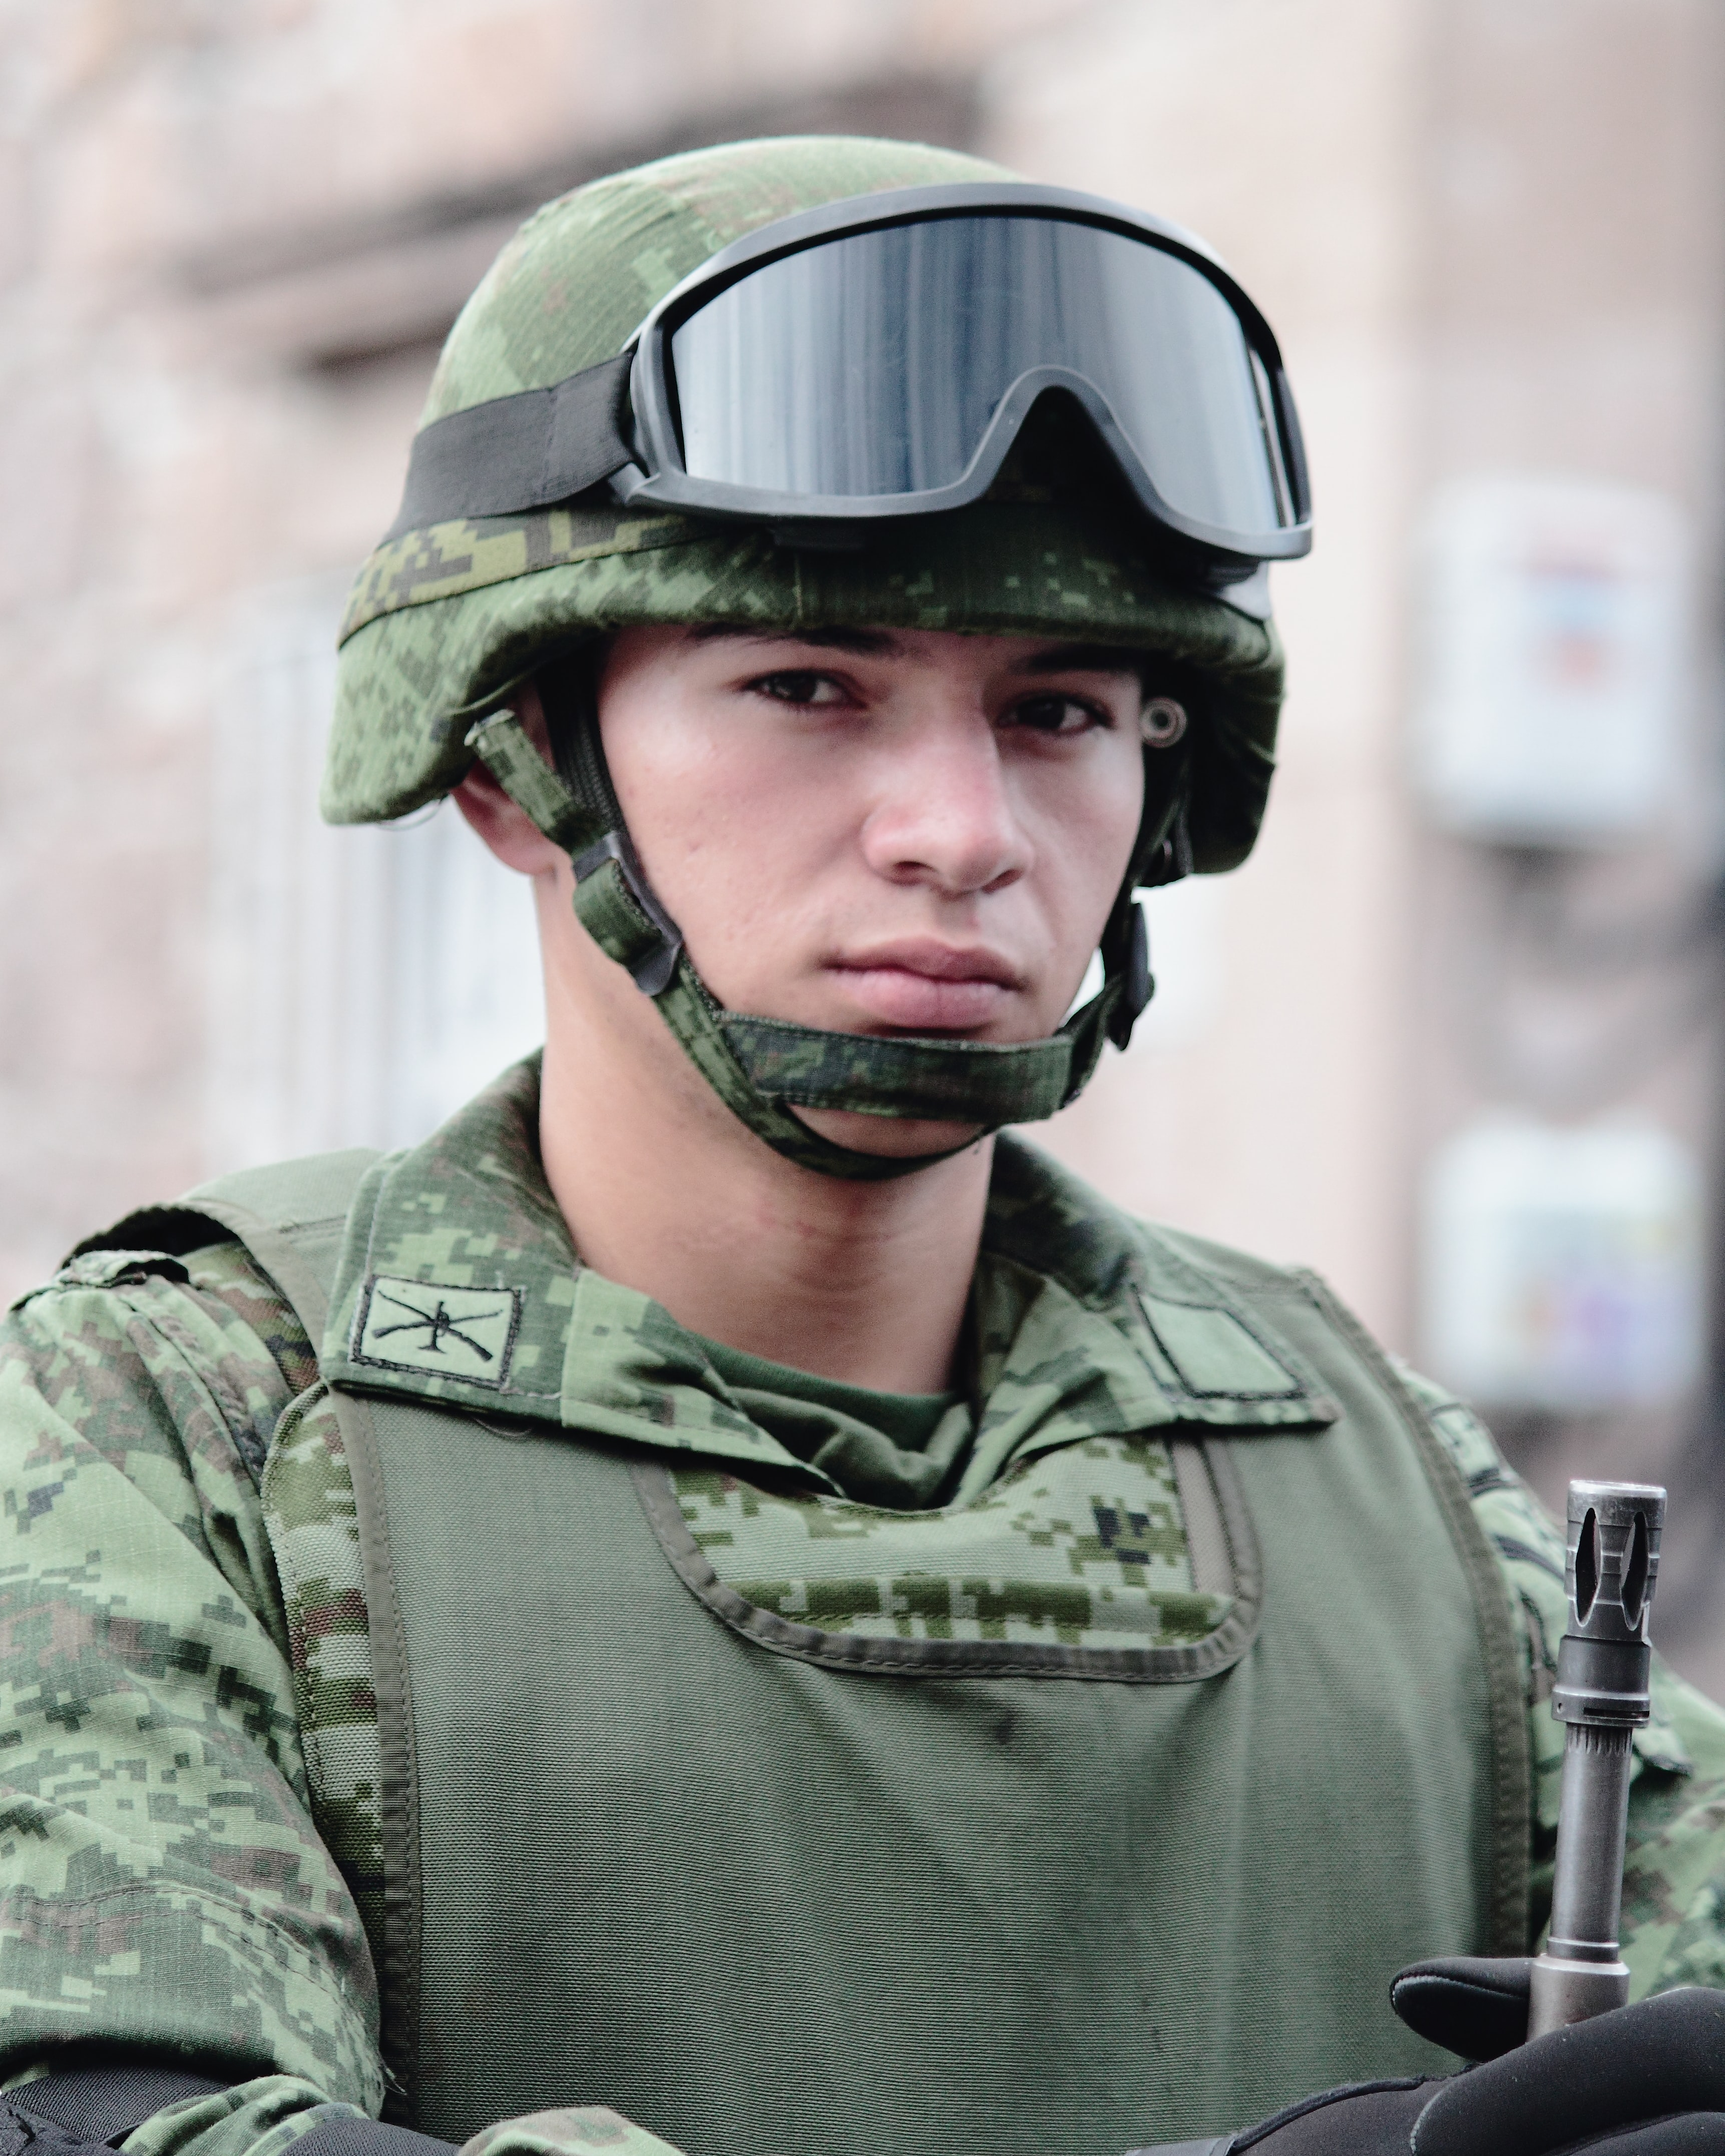 man with battle helmet and goggle